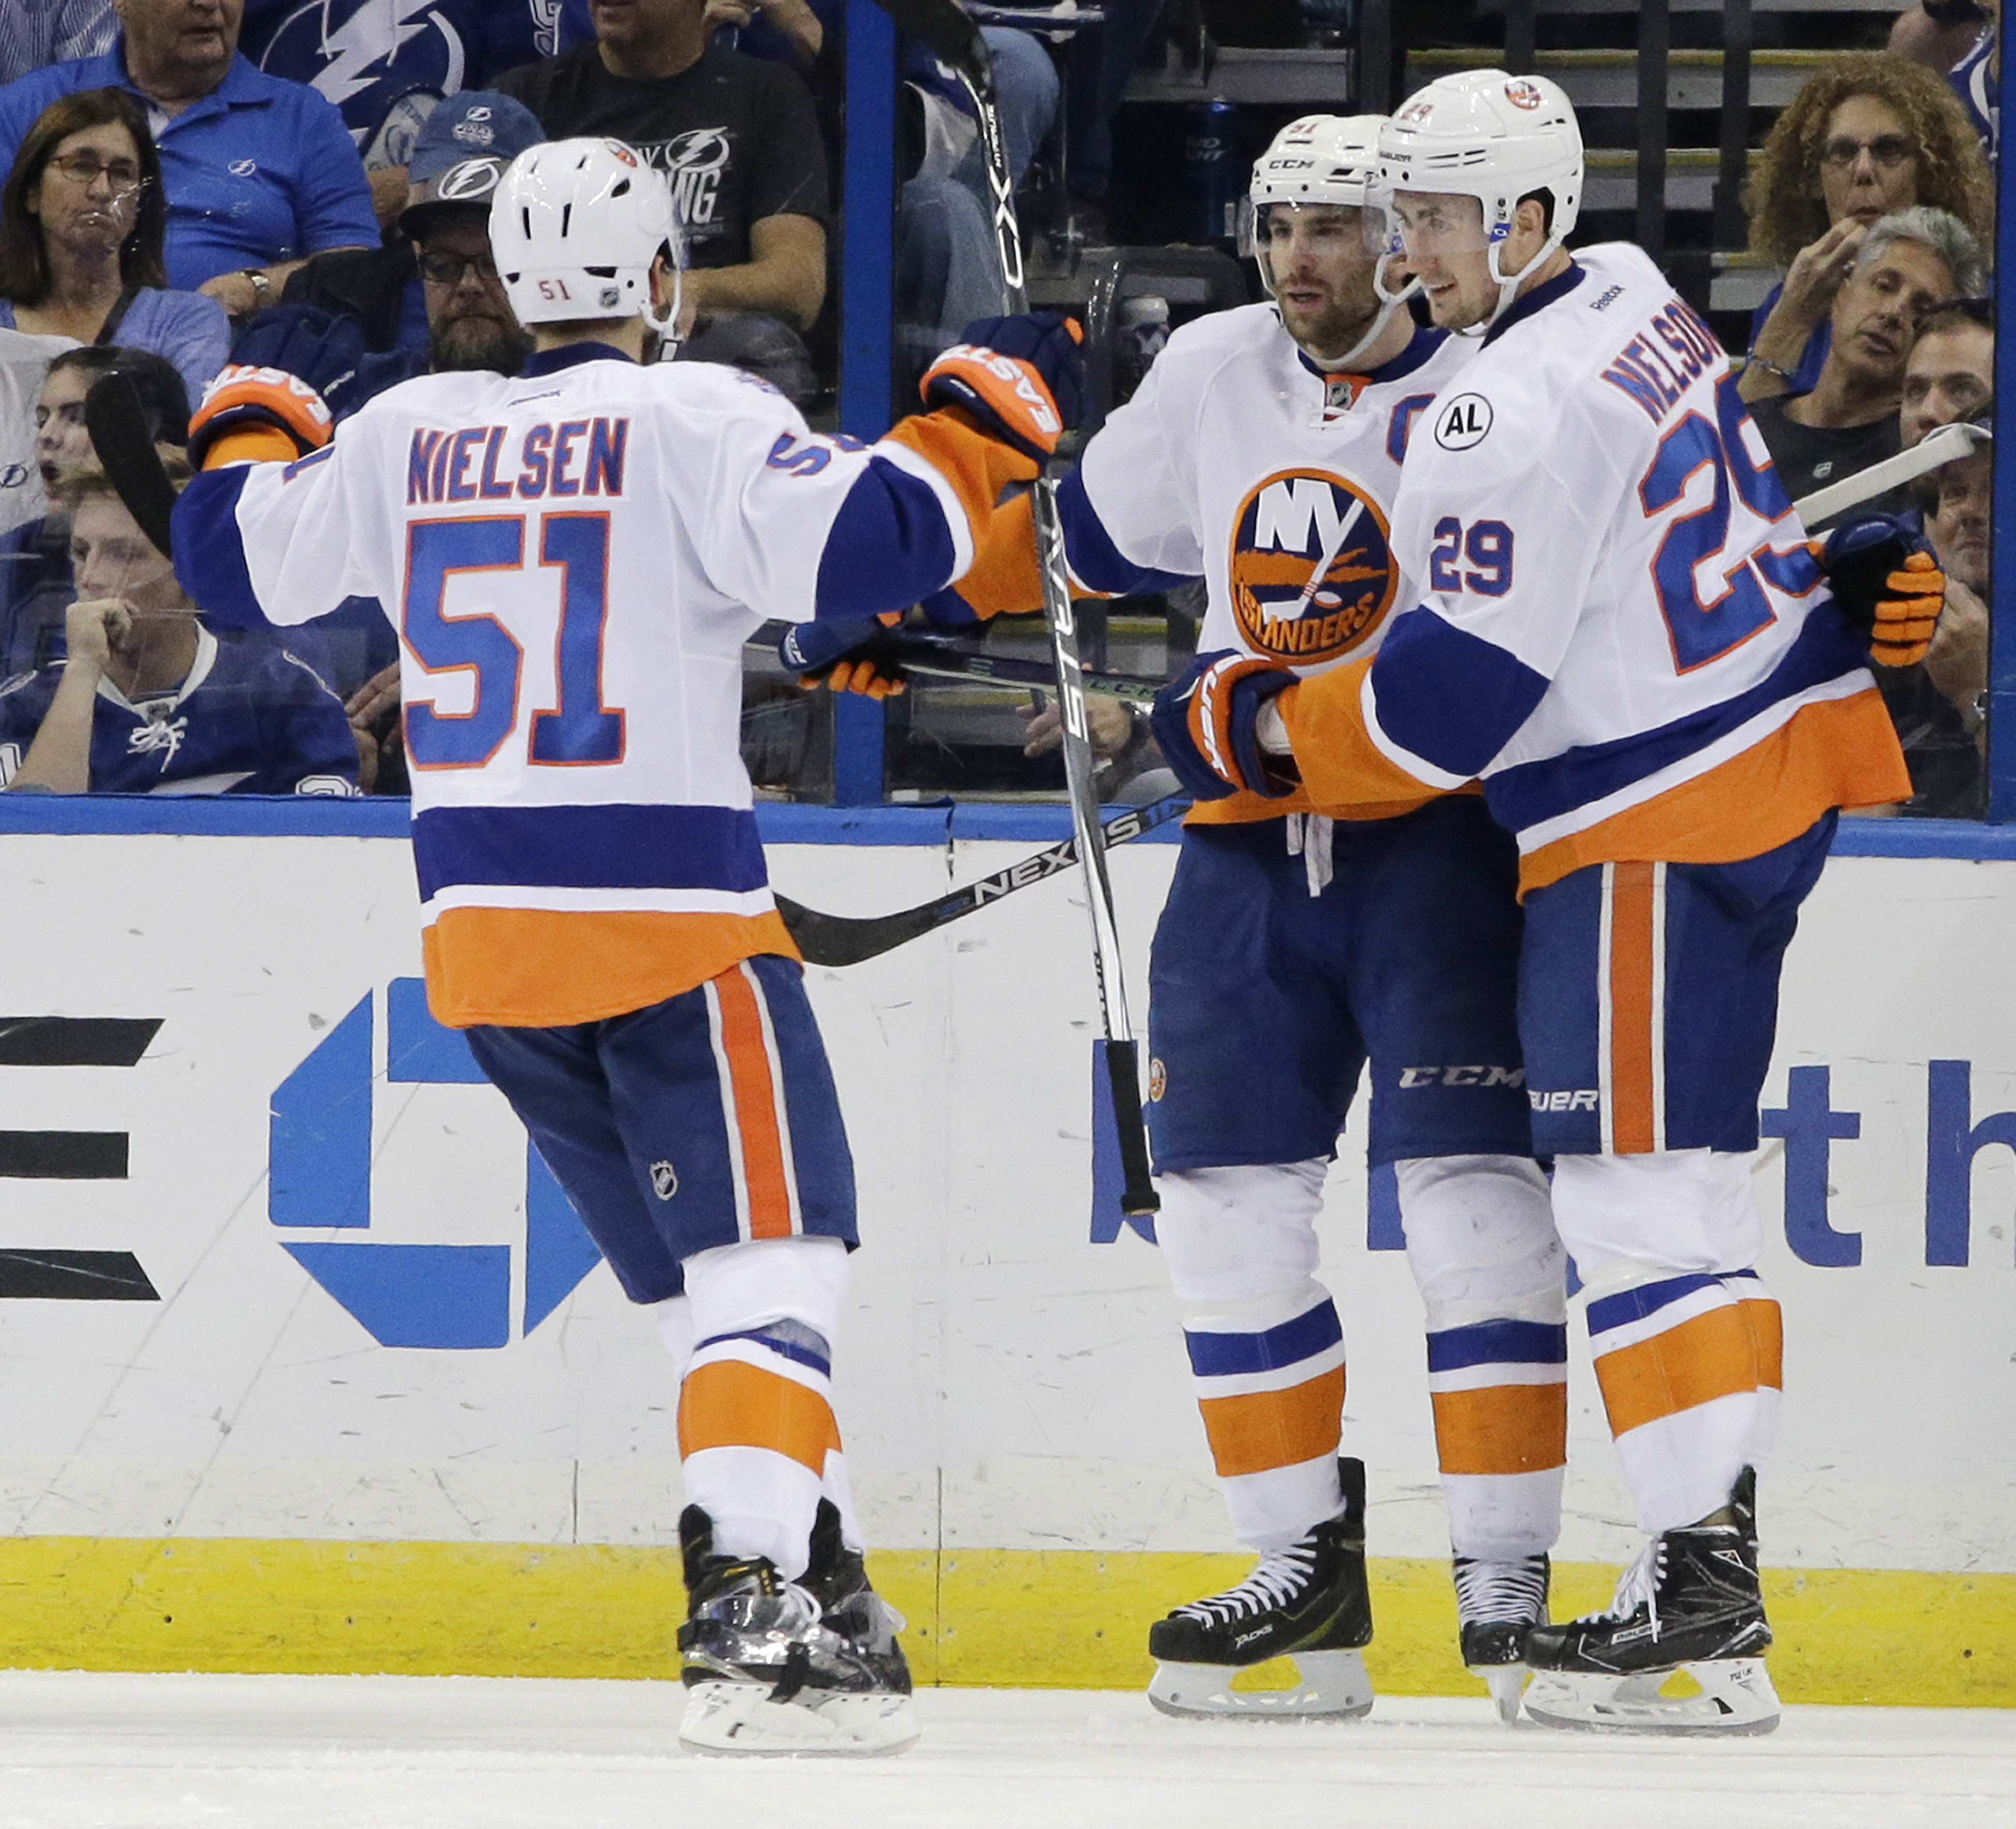 New York Islanders' John Tavares, center, is congratulated by Frans Nielsen (51), of Denmark, and Brock Nelson (29), after Tavares scored a goal during the second period of Game 1 of the NHL hockey Stanley Cup Eastern Conference semifinals against the Tam